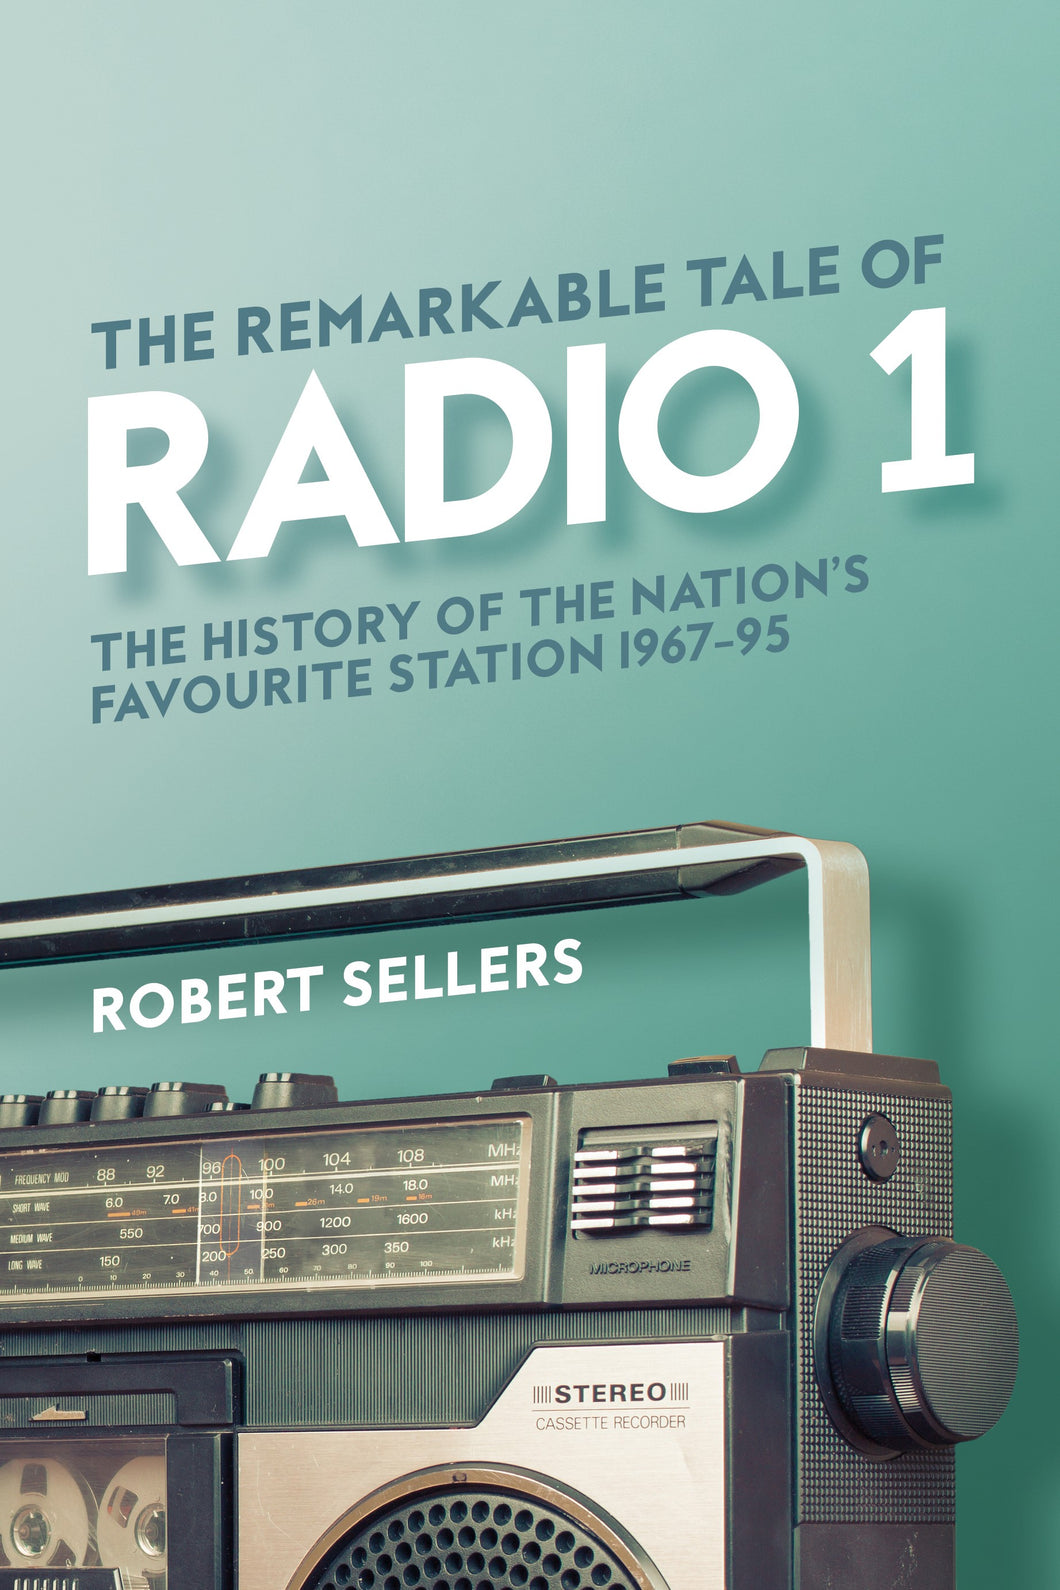 The Remarkable Tale of Radio 1: The History of the Nation's Favourite Station 1967-95 - Published on 20th May 2021